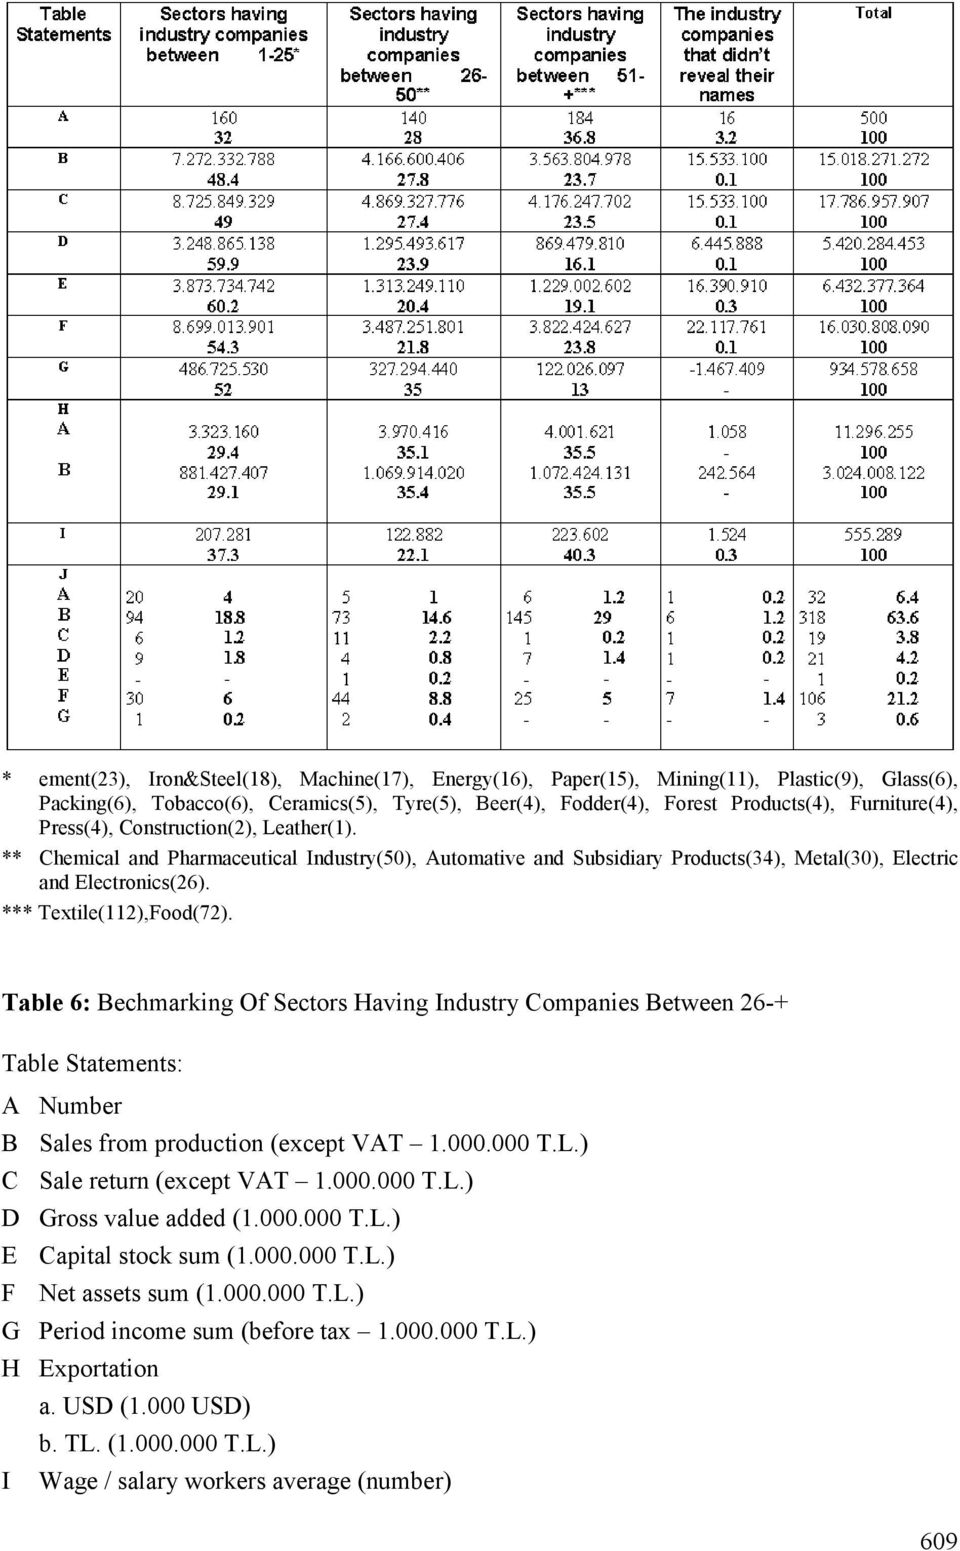 Table 6: Bechmarking Of Sectors Having Industry Companies Between 26-+ Table Statements: A B C D E F G H I Number Sales from production (except VAT 1.000.000 T.L.) Sale return (except VAT 1.000.000 T.L.) Gross value added (1.